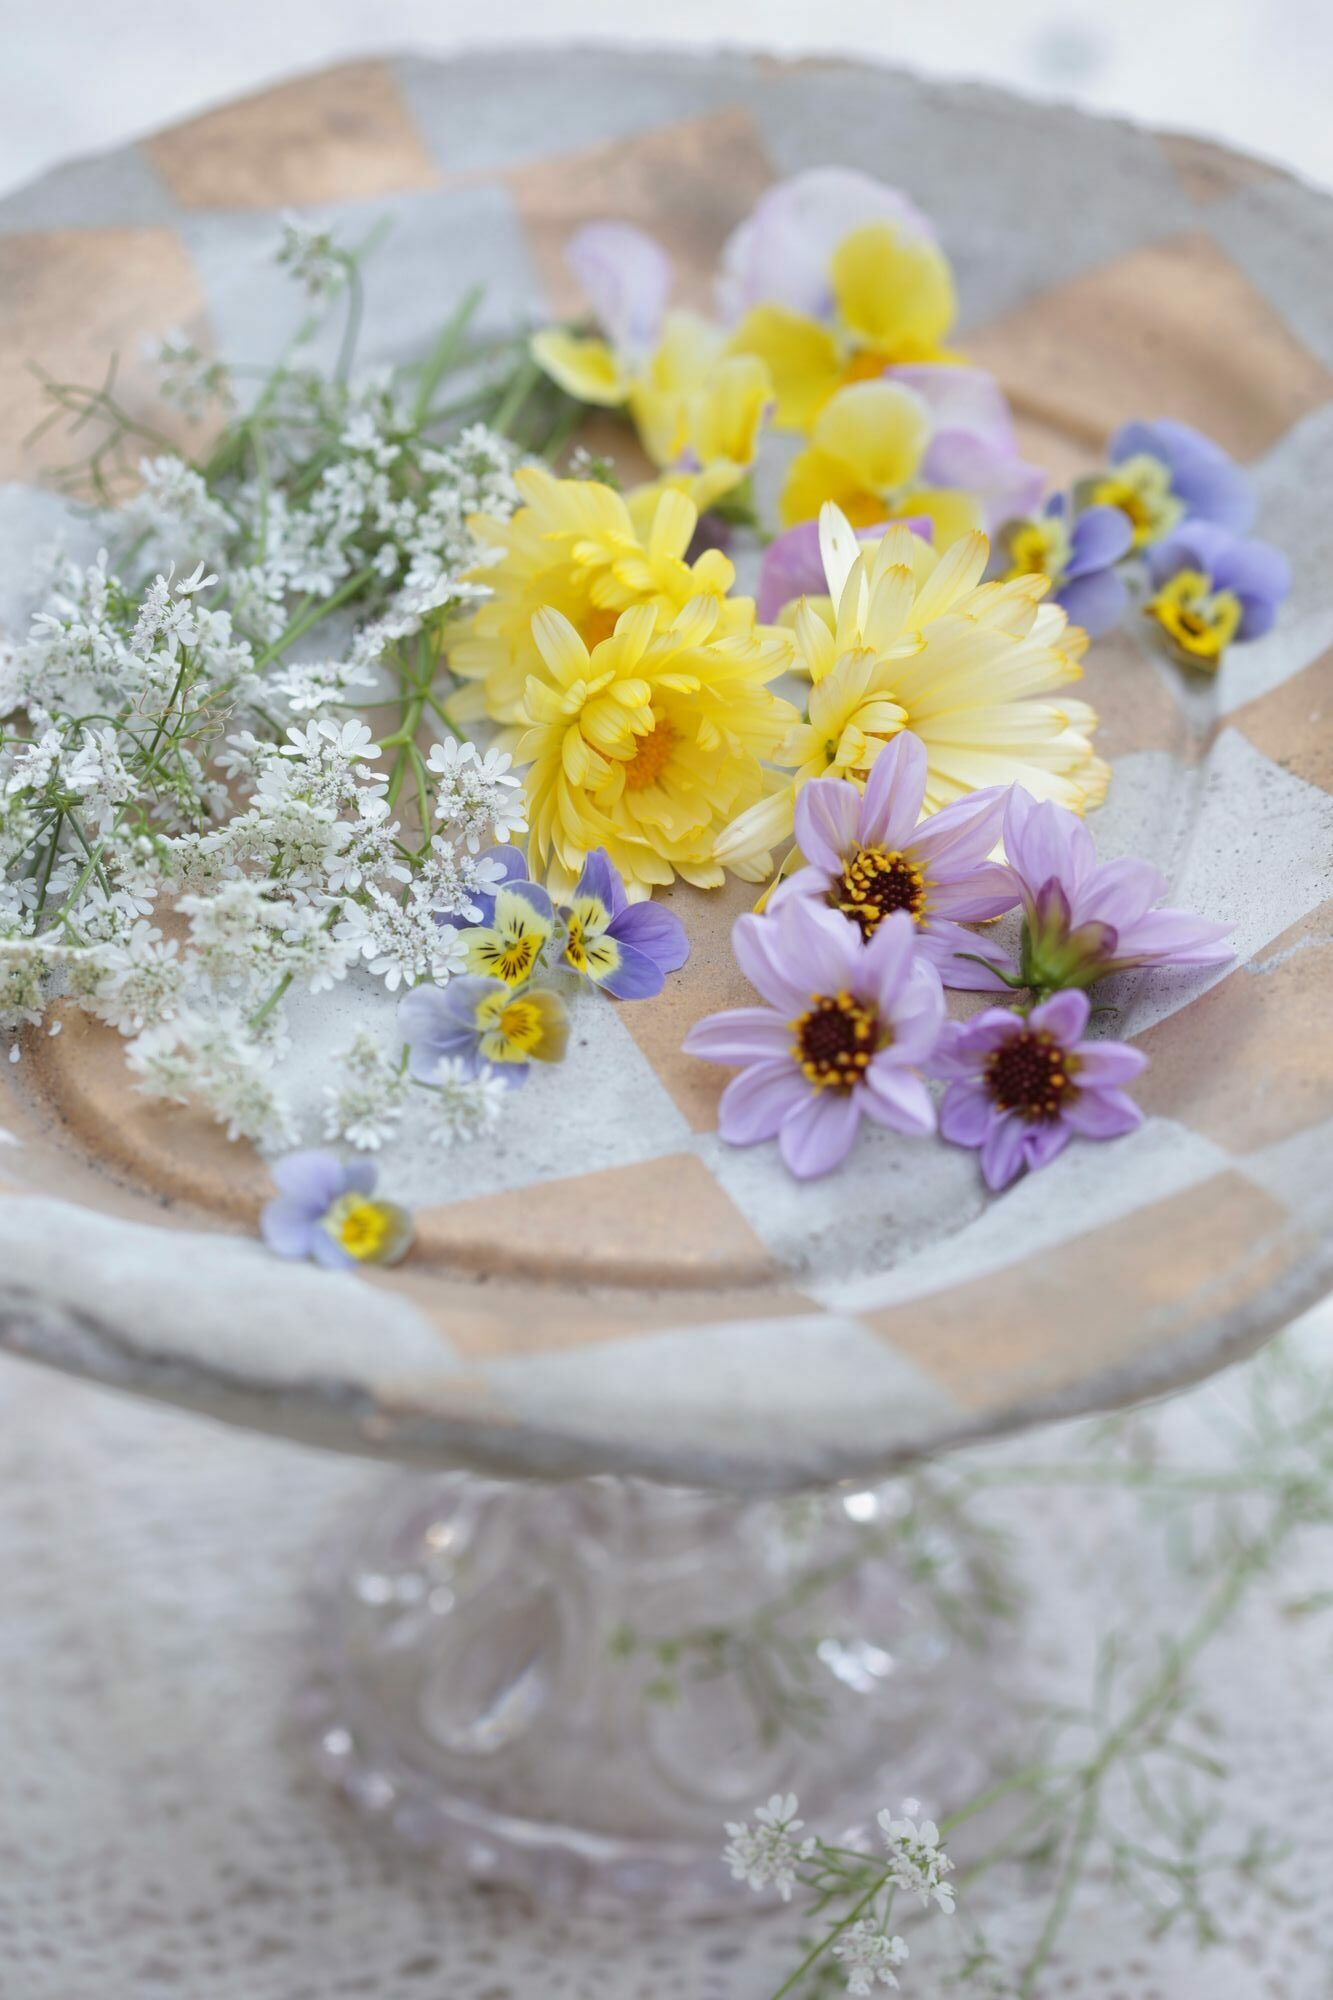 Edible flowers: the mild-tasting flowers of dahlia, calendula and violet are suitable for both savory and sweet foods.  Taste the flowers as is.